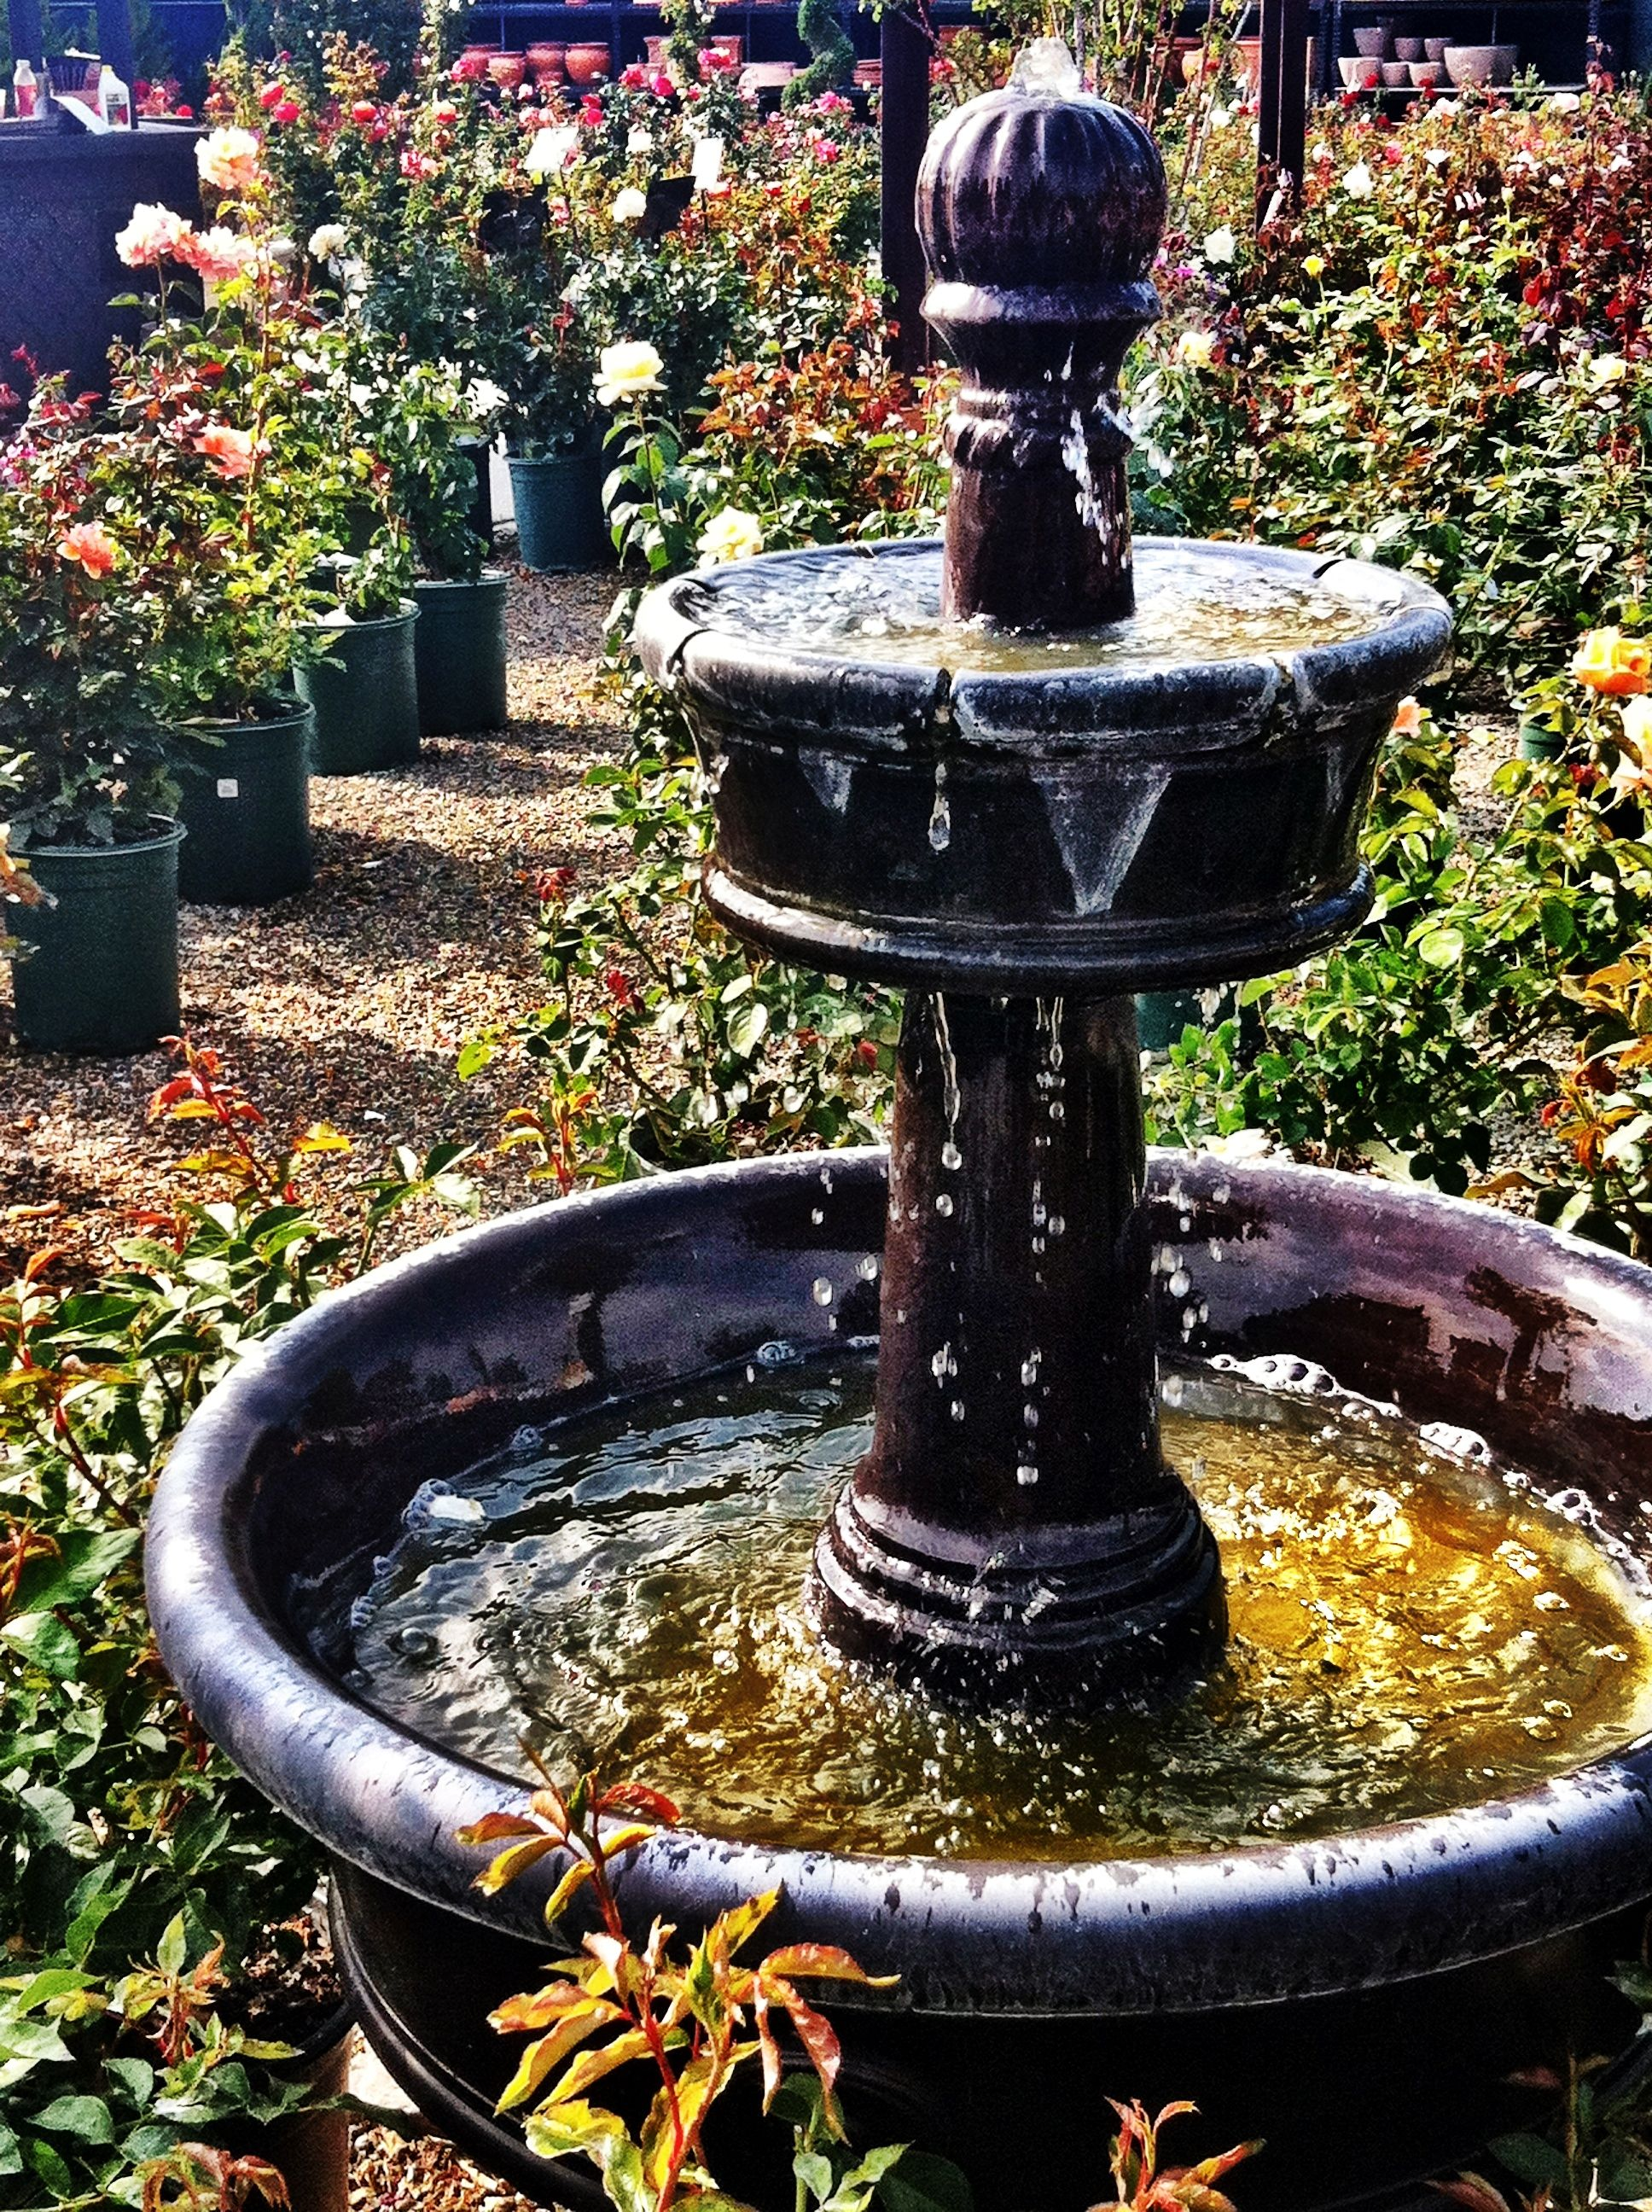 Fountain Display At Rogers Gardens! #rogersgardens #fountain #garden #decor  #iknowboyd